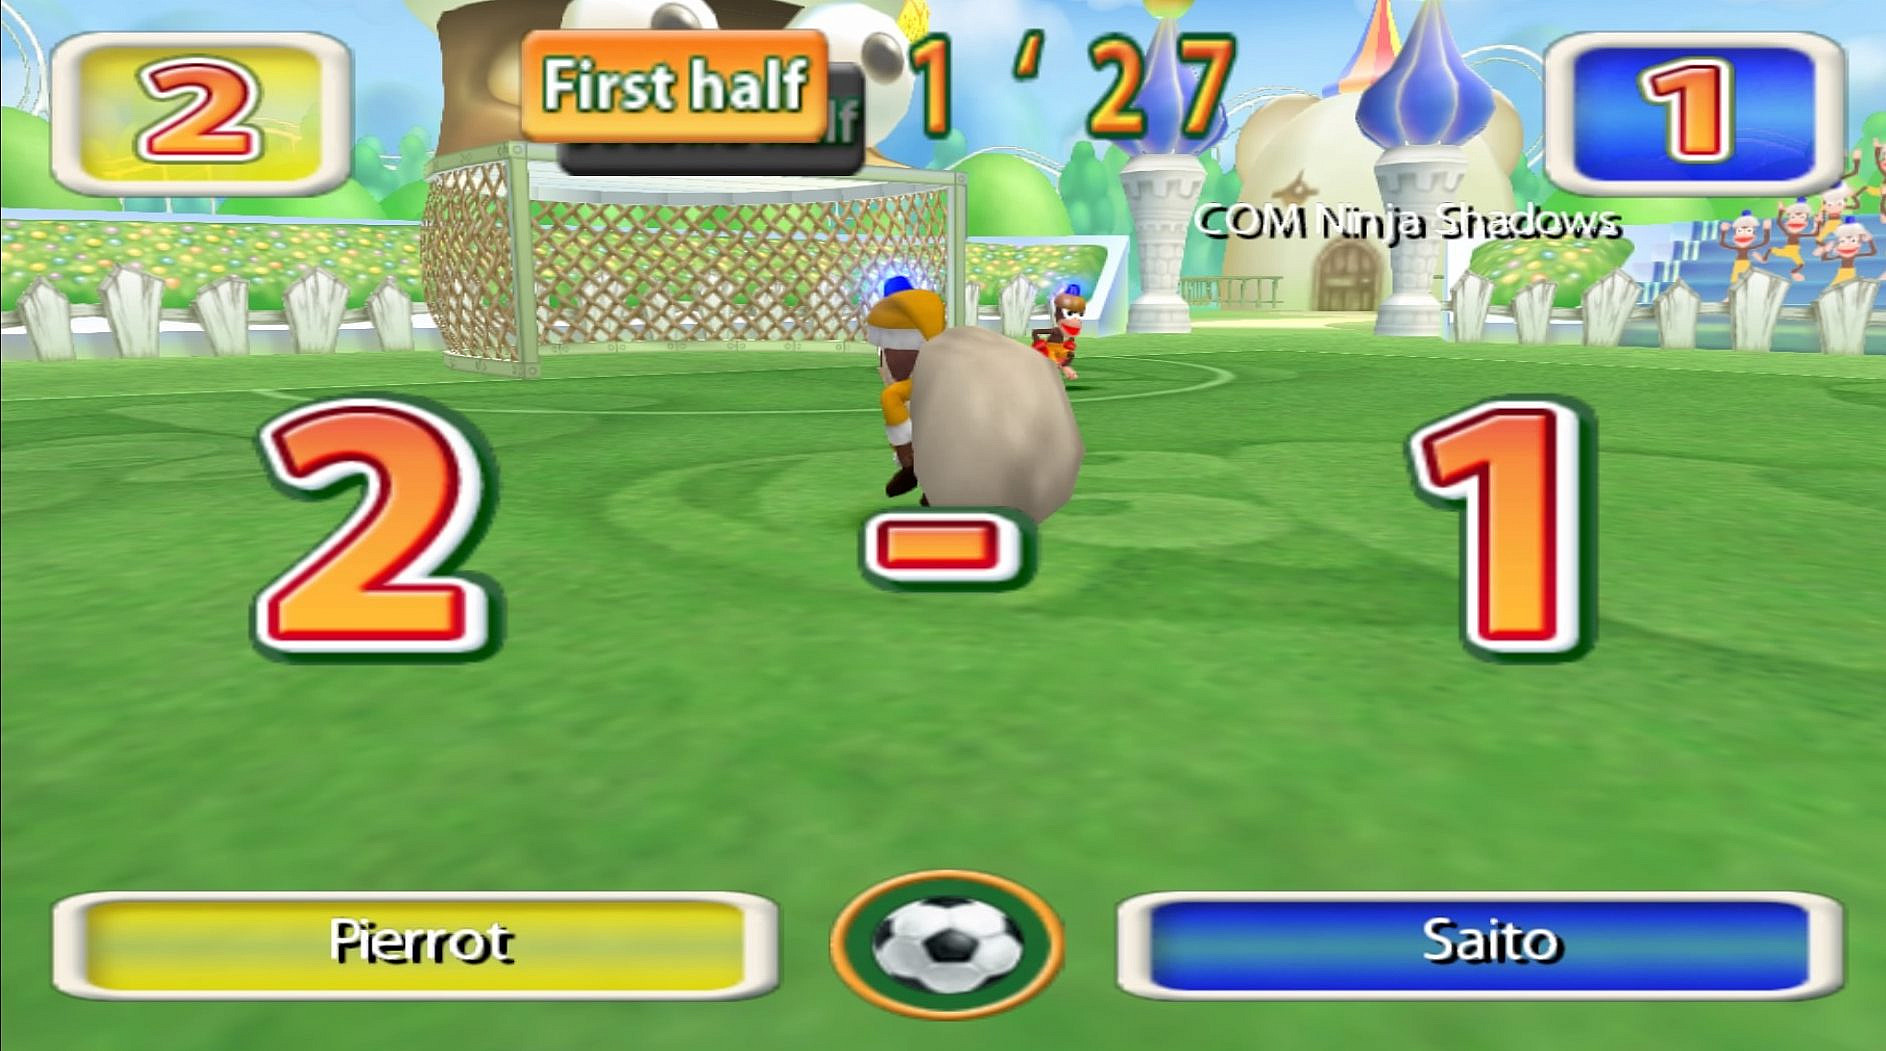 Monkey Football gameplay and celebration after a goal.